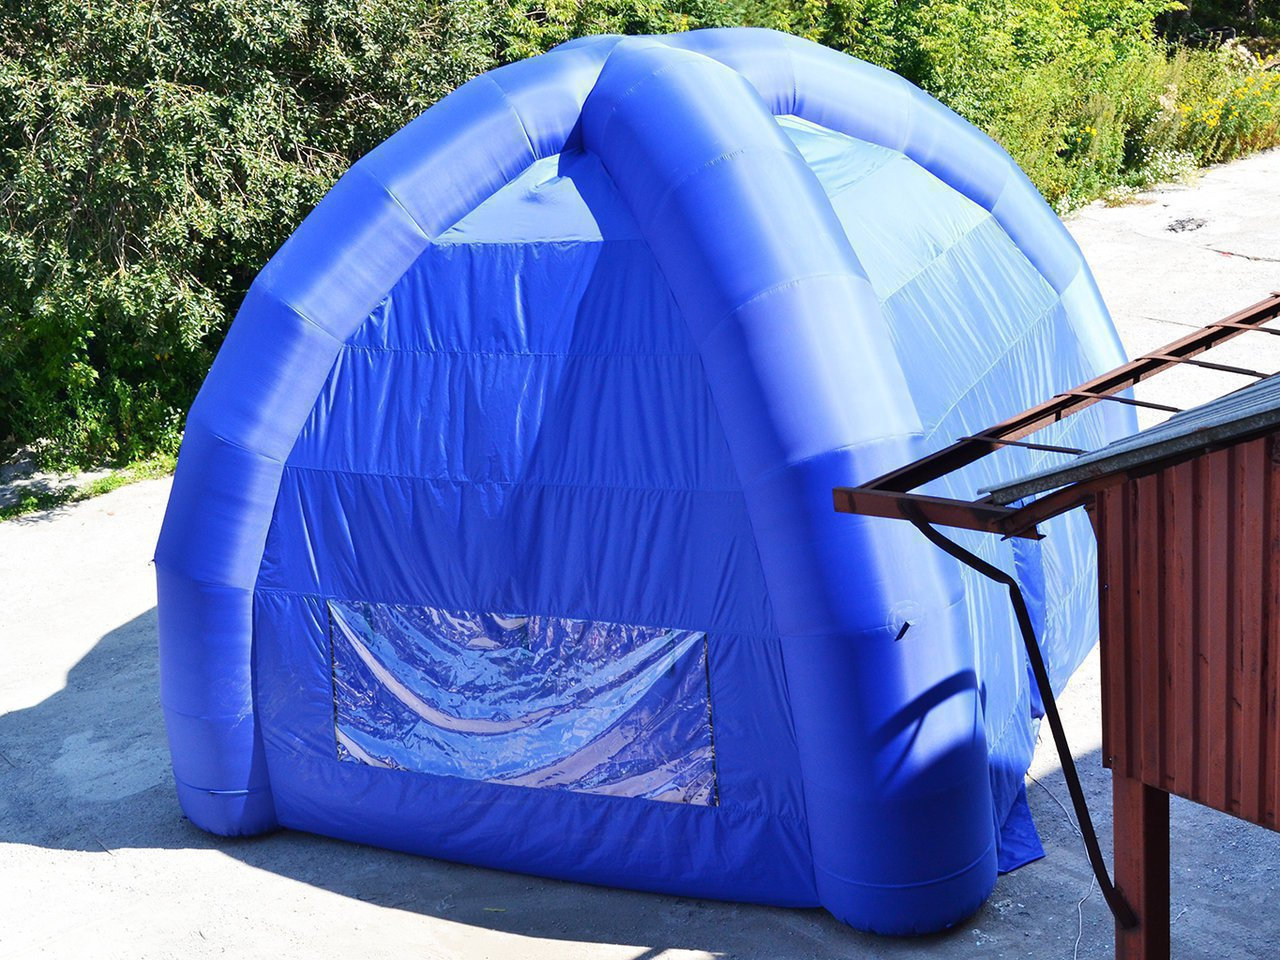 Big blue four-support tent inflatable